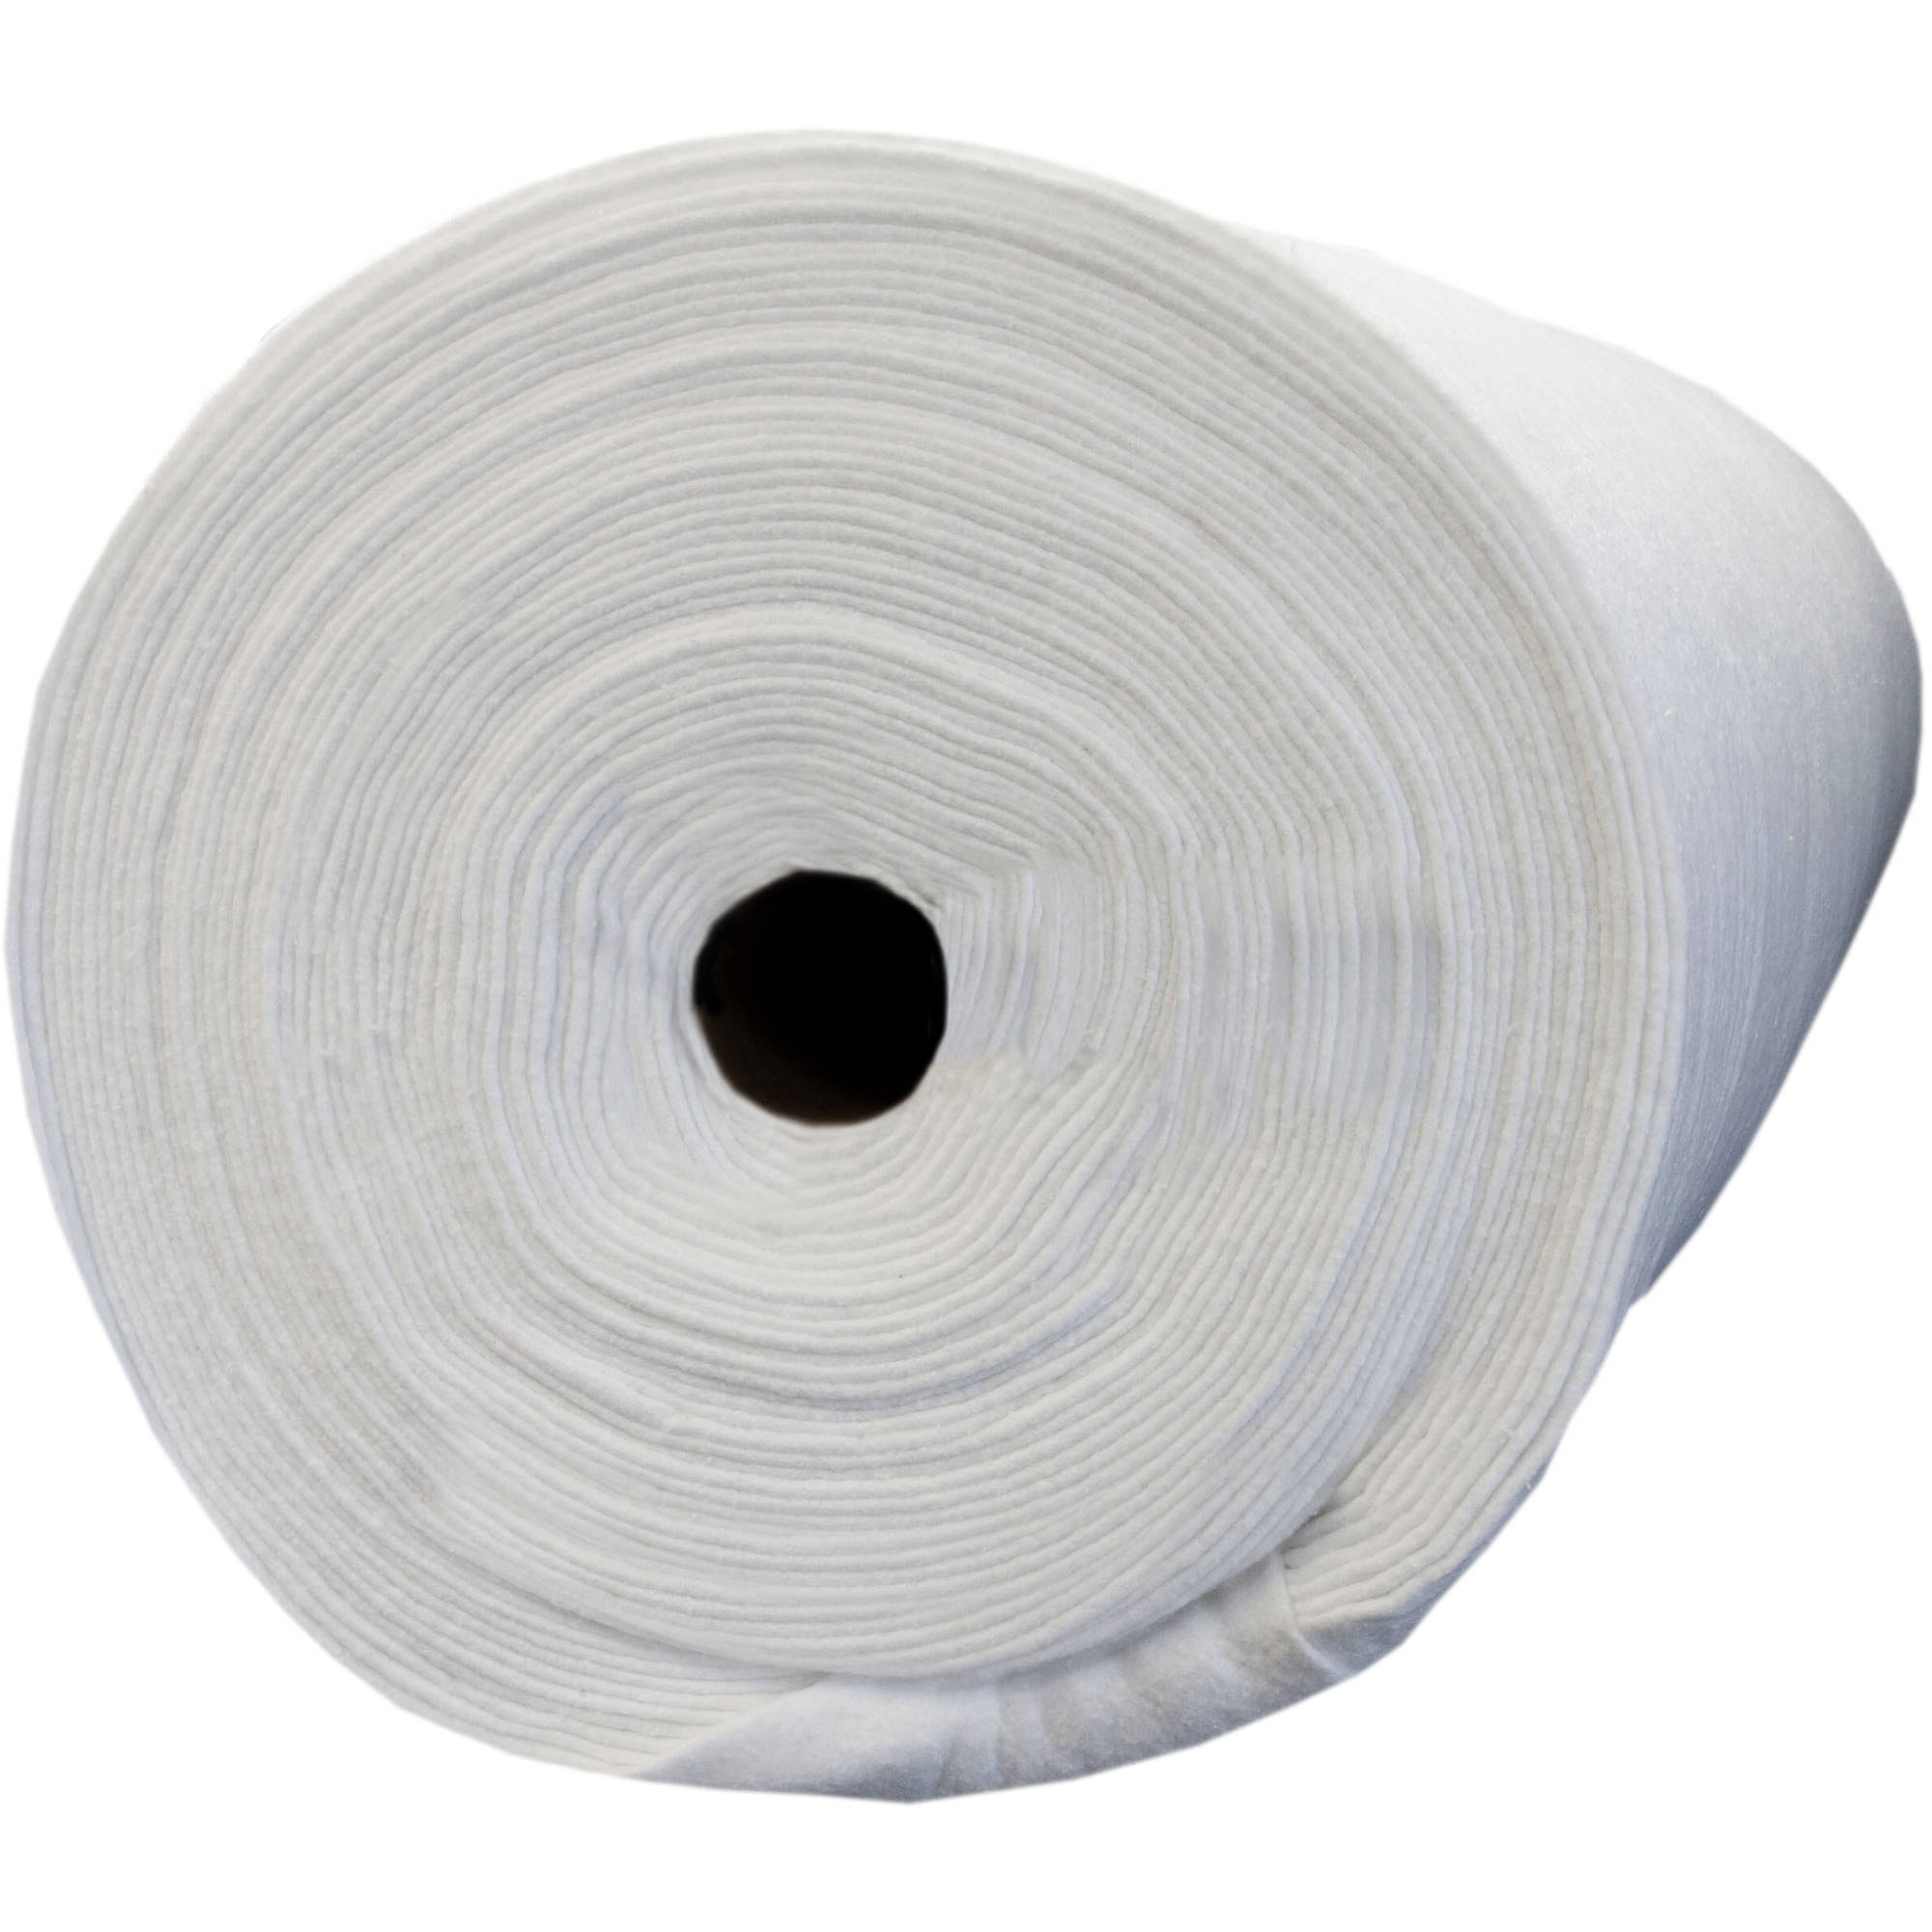 "Pellon Natures Touch 100 Percent White Cotton Batting with Scrim, 96"" Wide, 30 Yard Roll"